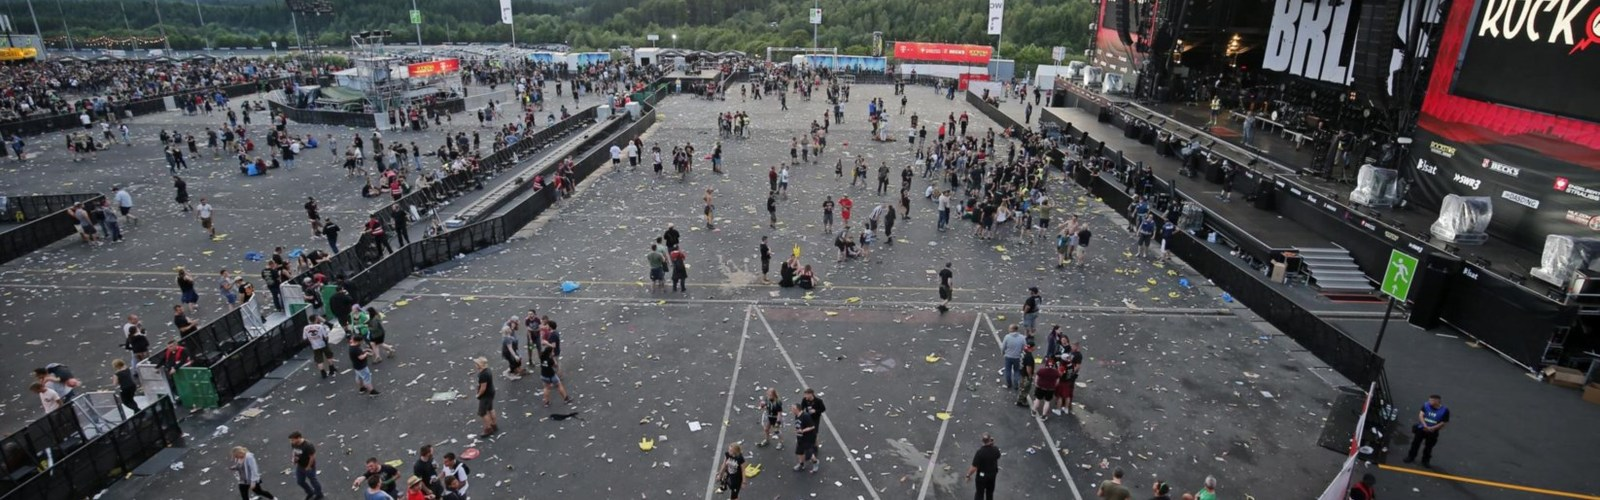 Rock am Ring festival in Germany evacuated due to 'terror threat'